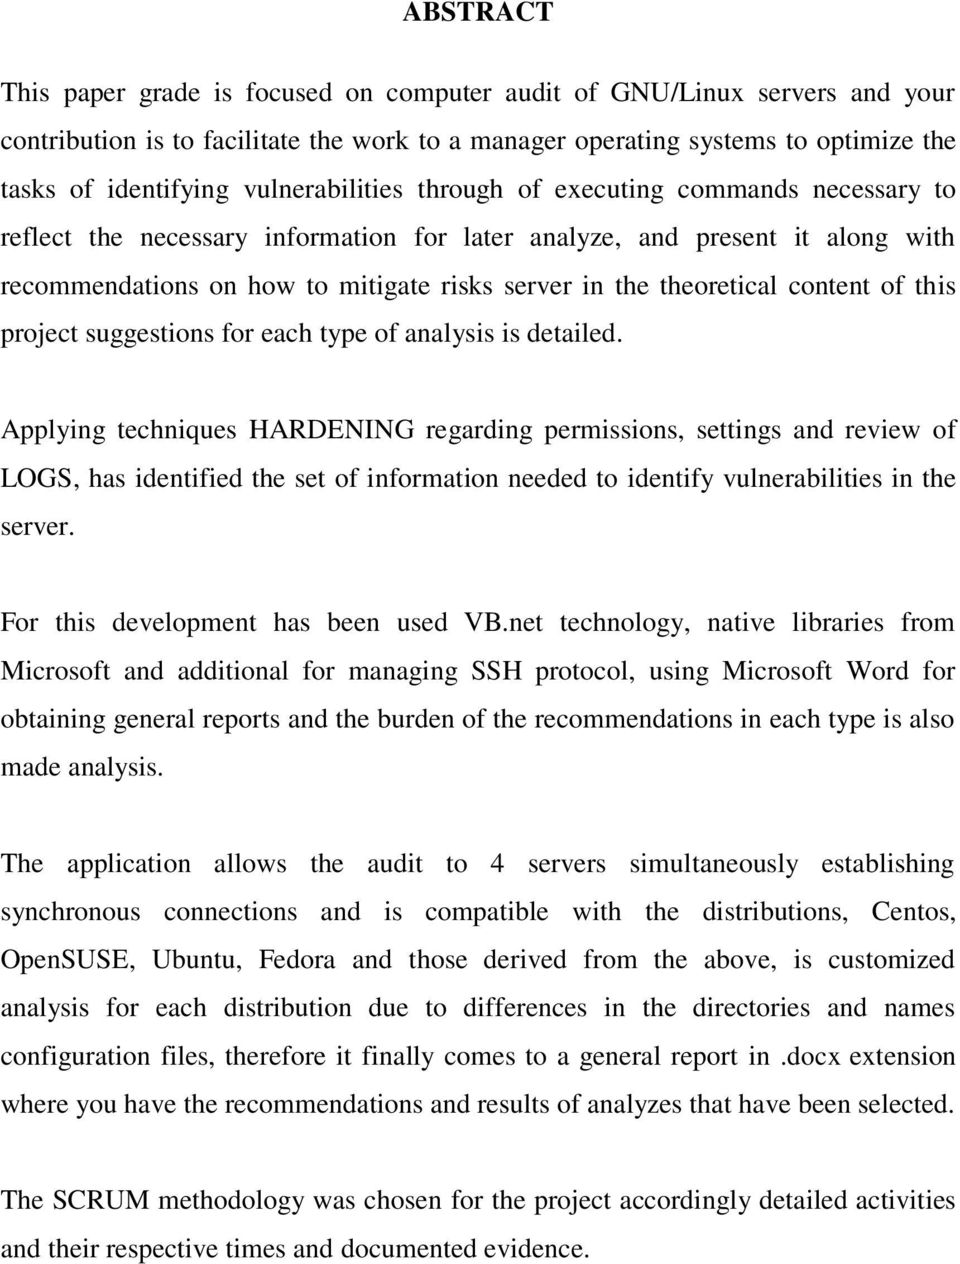 theoretical content of this project suggestions for each type of analysis is detailed.